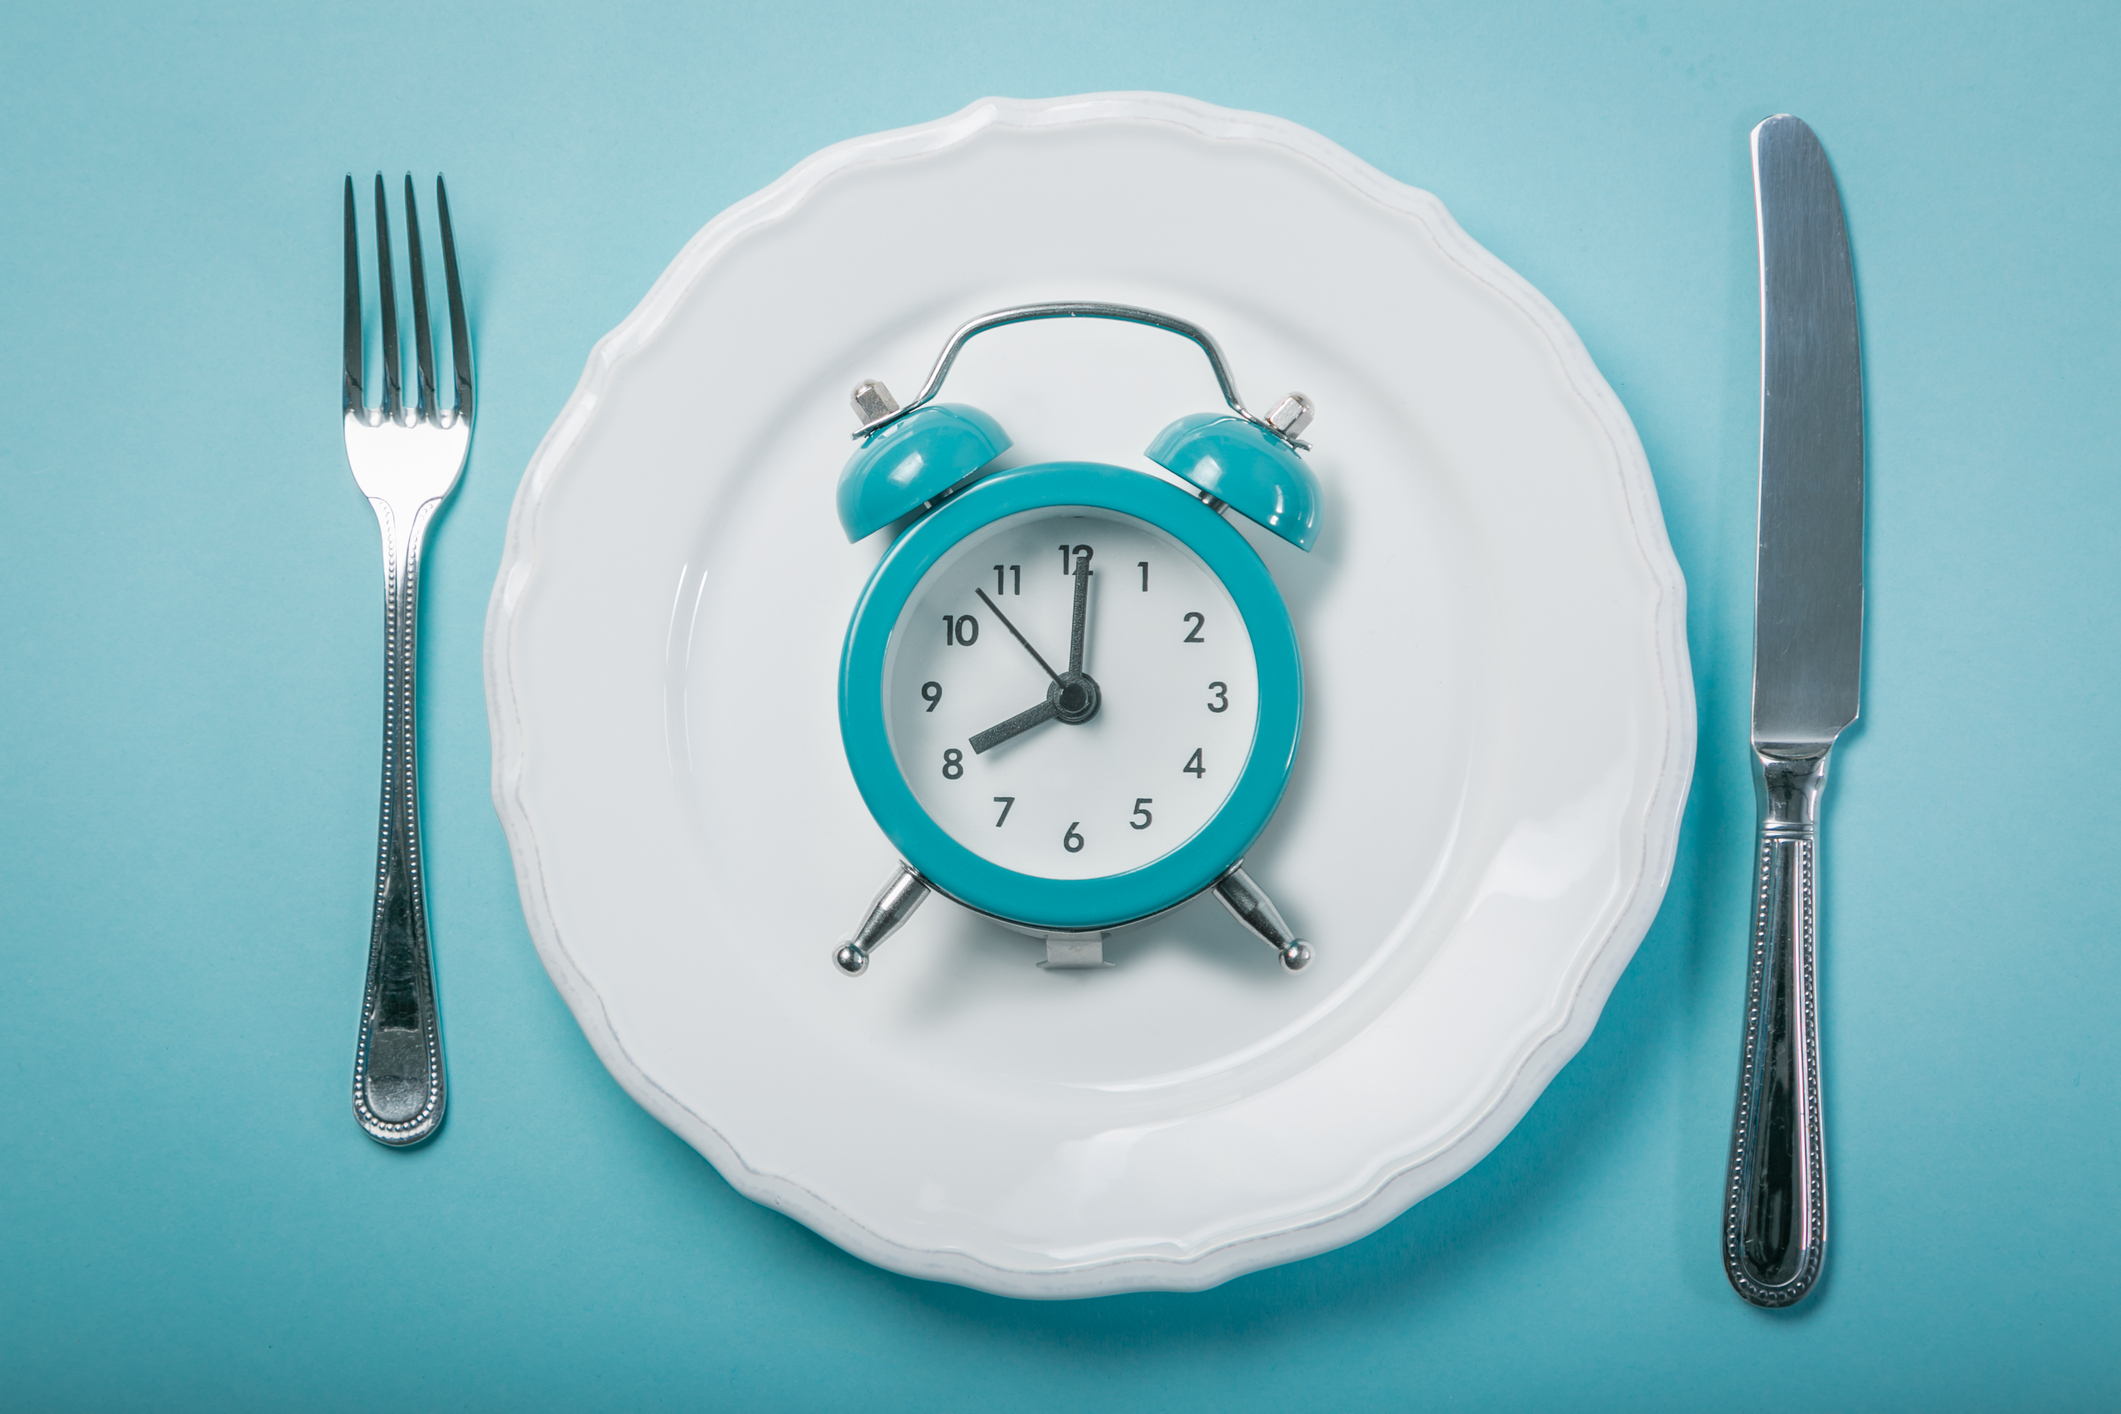 Interval and prolonged fasting: pros and cons